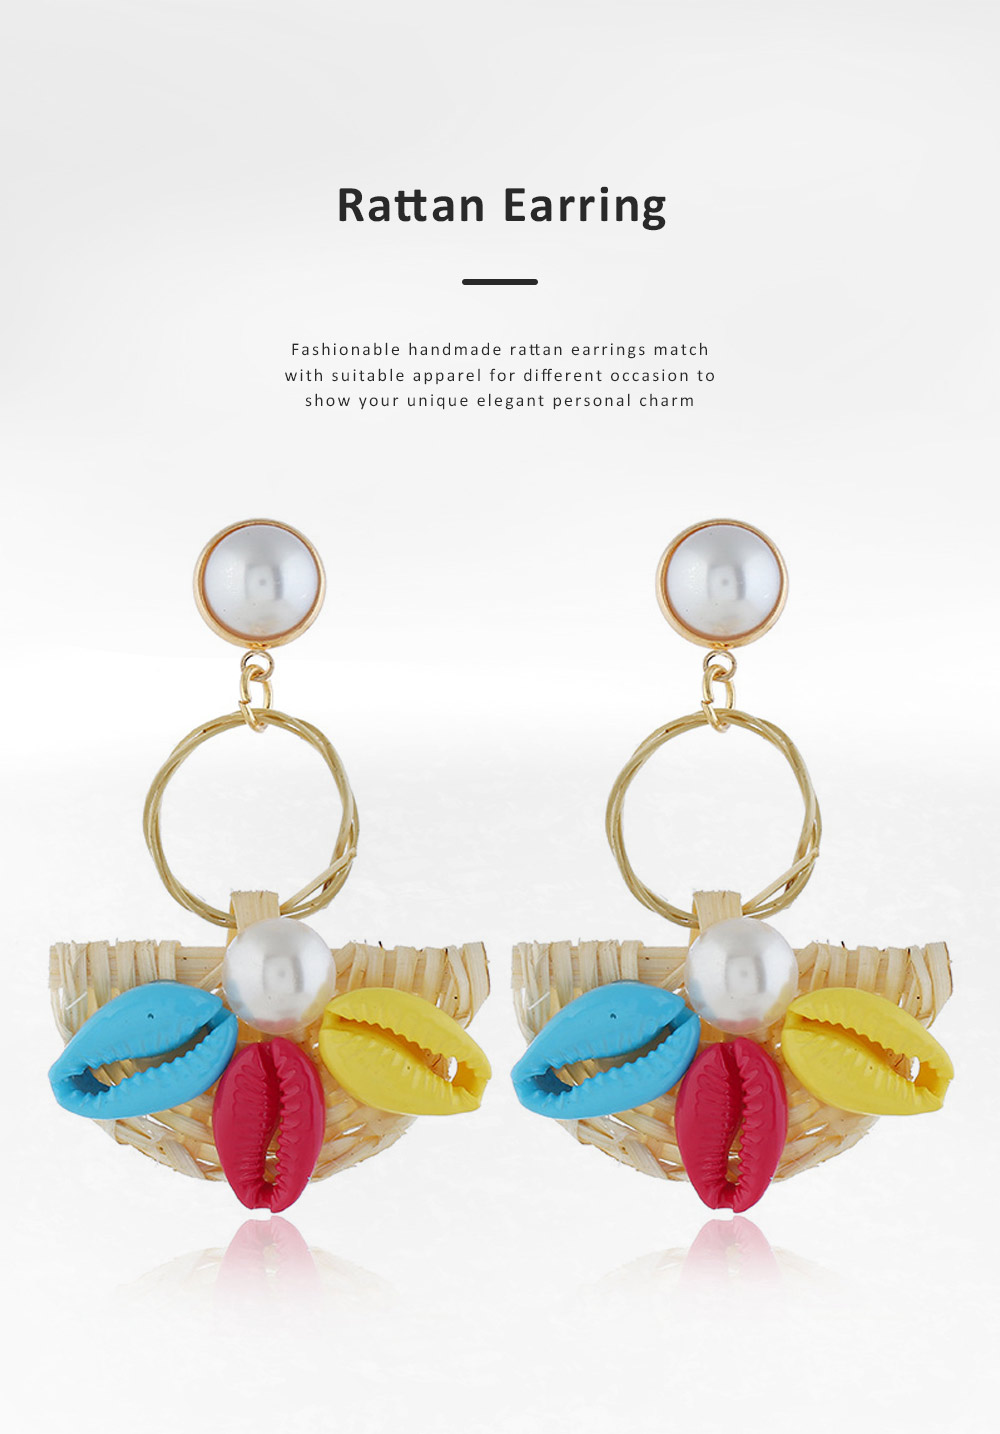 Natural Ocean Style Earring Colorful Outfit Accessory Jewelry Shell Rattan Pearl Earring for Women Girls 5